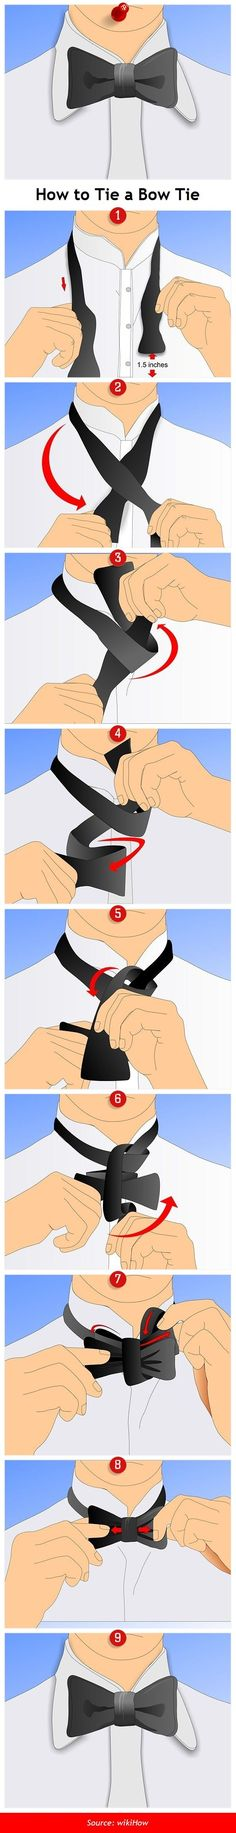 How to Tie a Bow Tie. Necessary sartorial information for the Man In The Know. #infographic #menswear